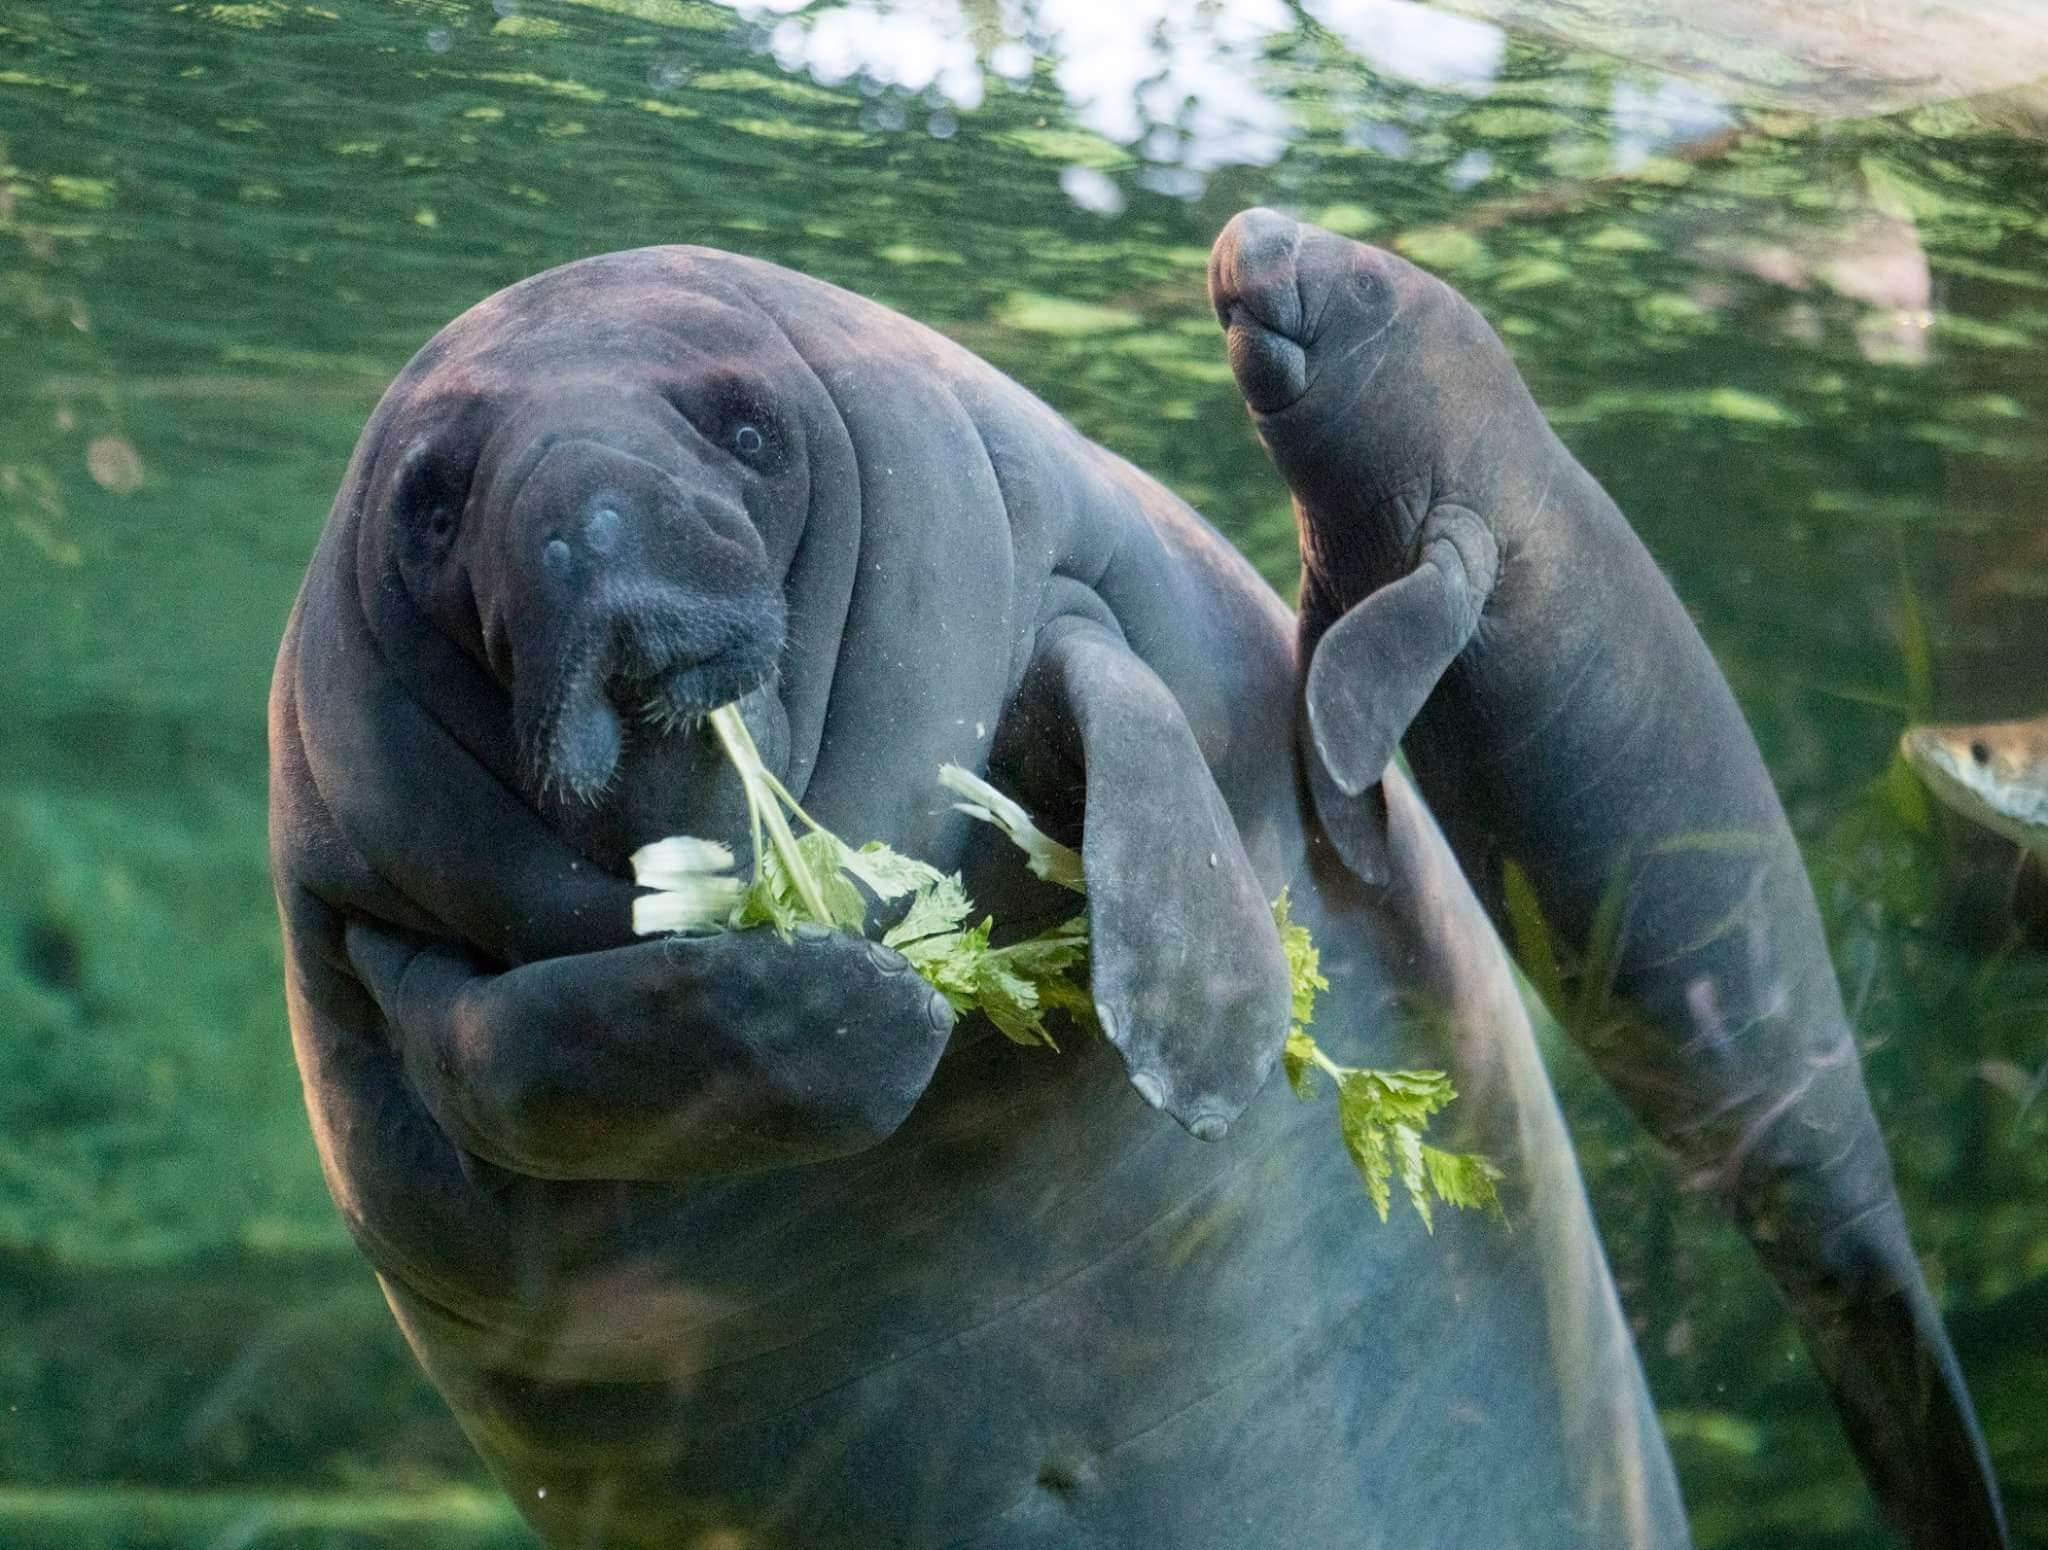 Baby West Indian Manatees are born with molars and can